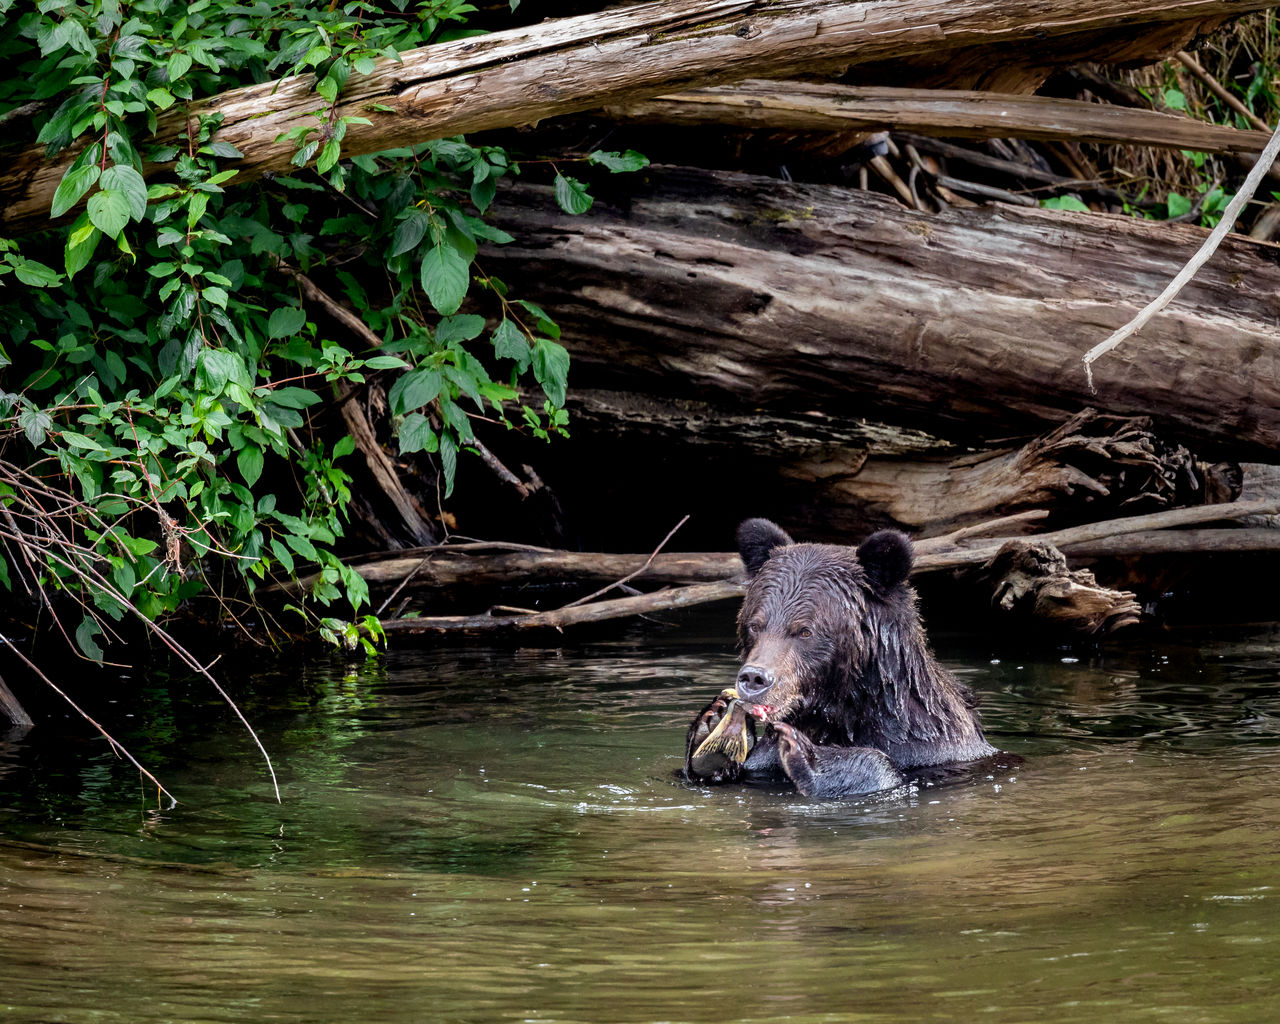 animal, animal themes, water, one animal, animal wildlife, waterfront, vertebrate, mammal, nature, lake, animals in the wild, day, plant, outdoors, no people, tree, swimming, wood - material, animal head